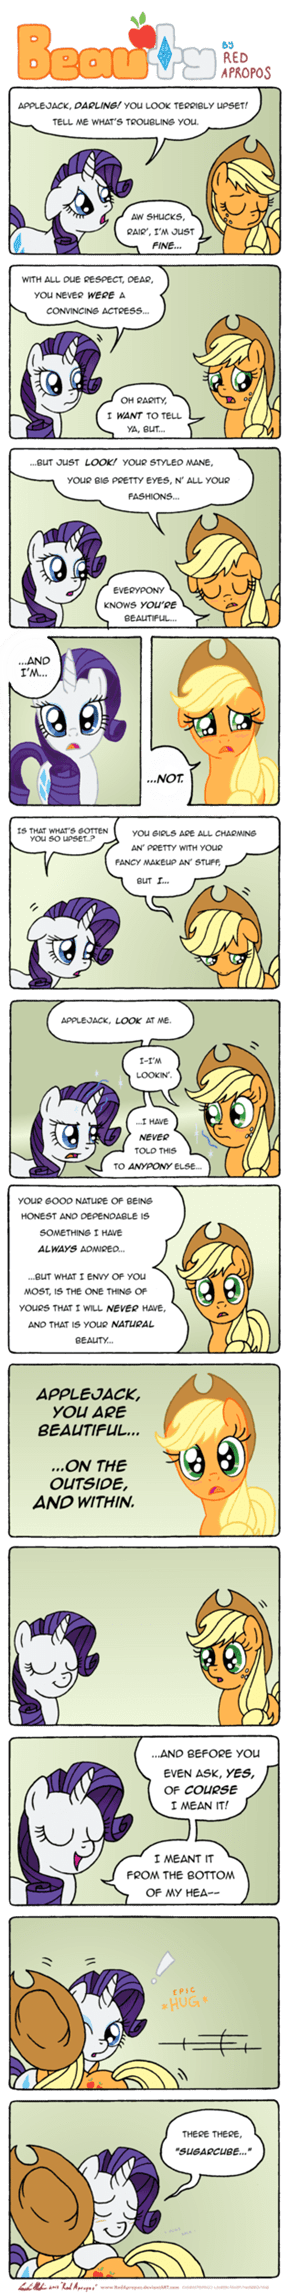 Applejack's Beauty